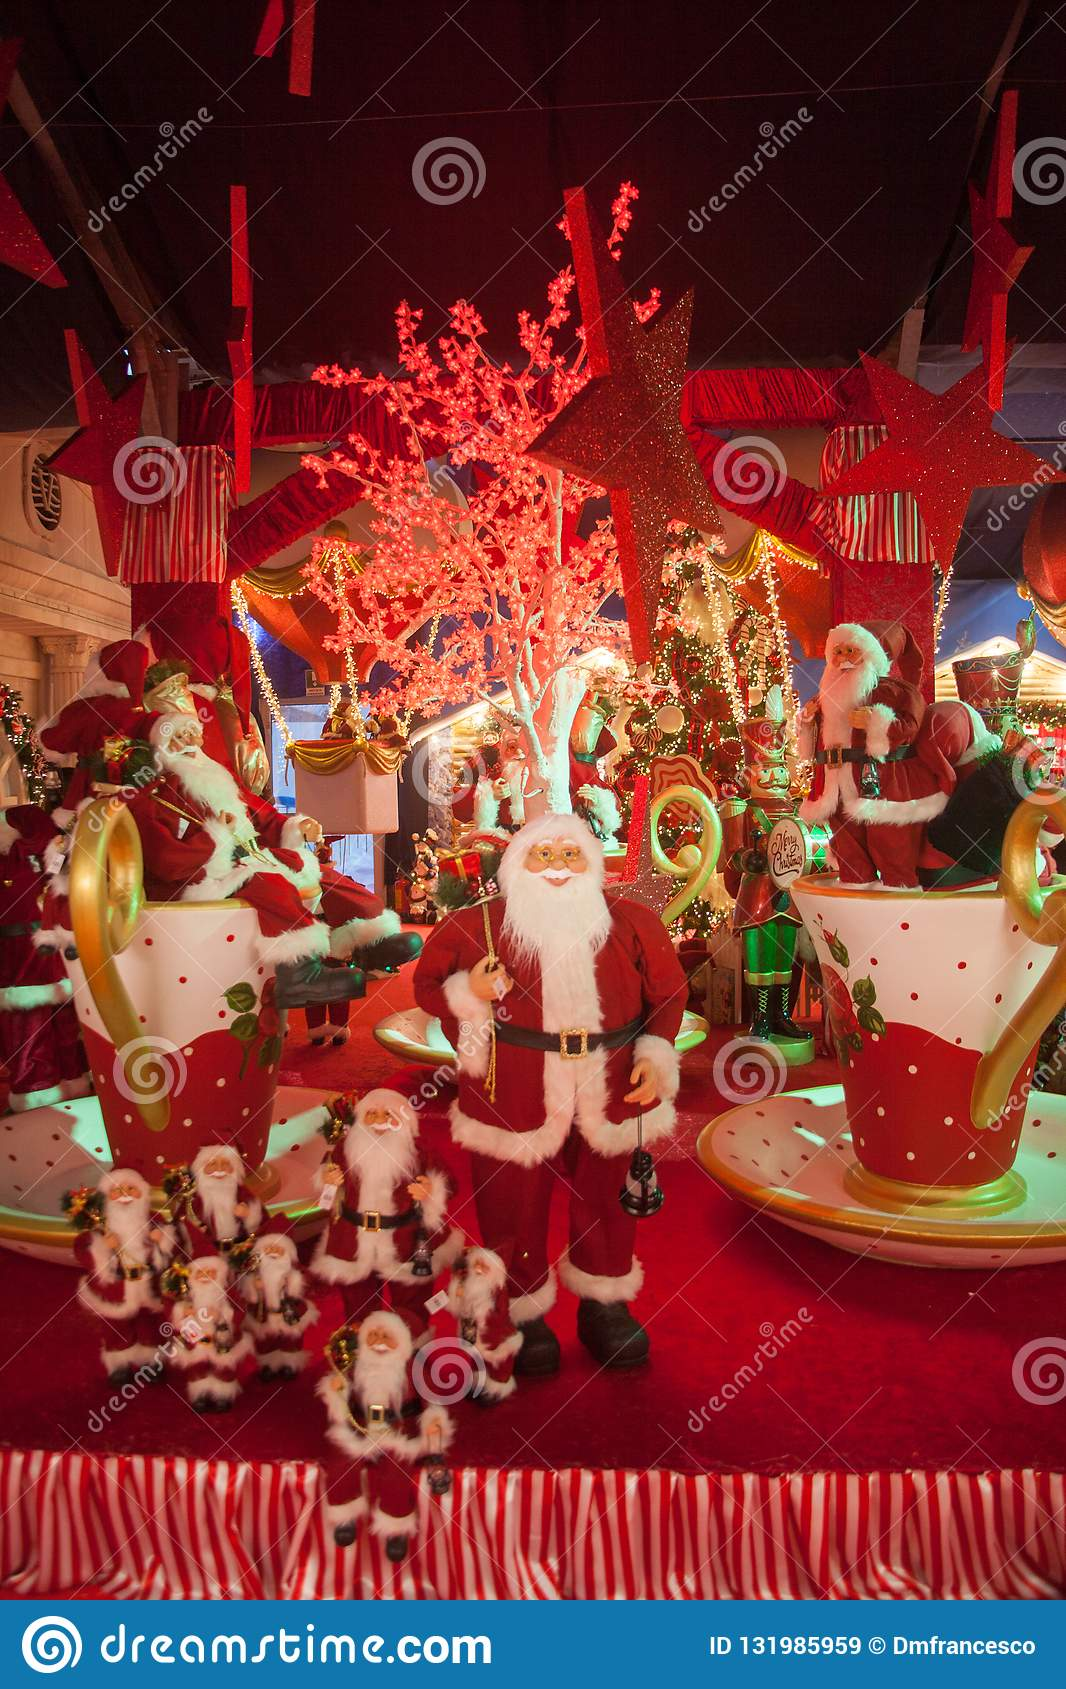 Christmas In Italy Decorations.Christmas Markets Christmas Decorations Italy Stock Image